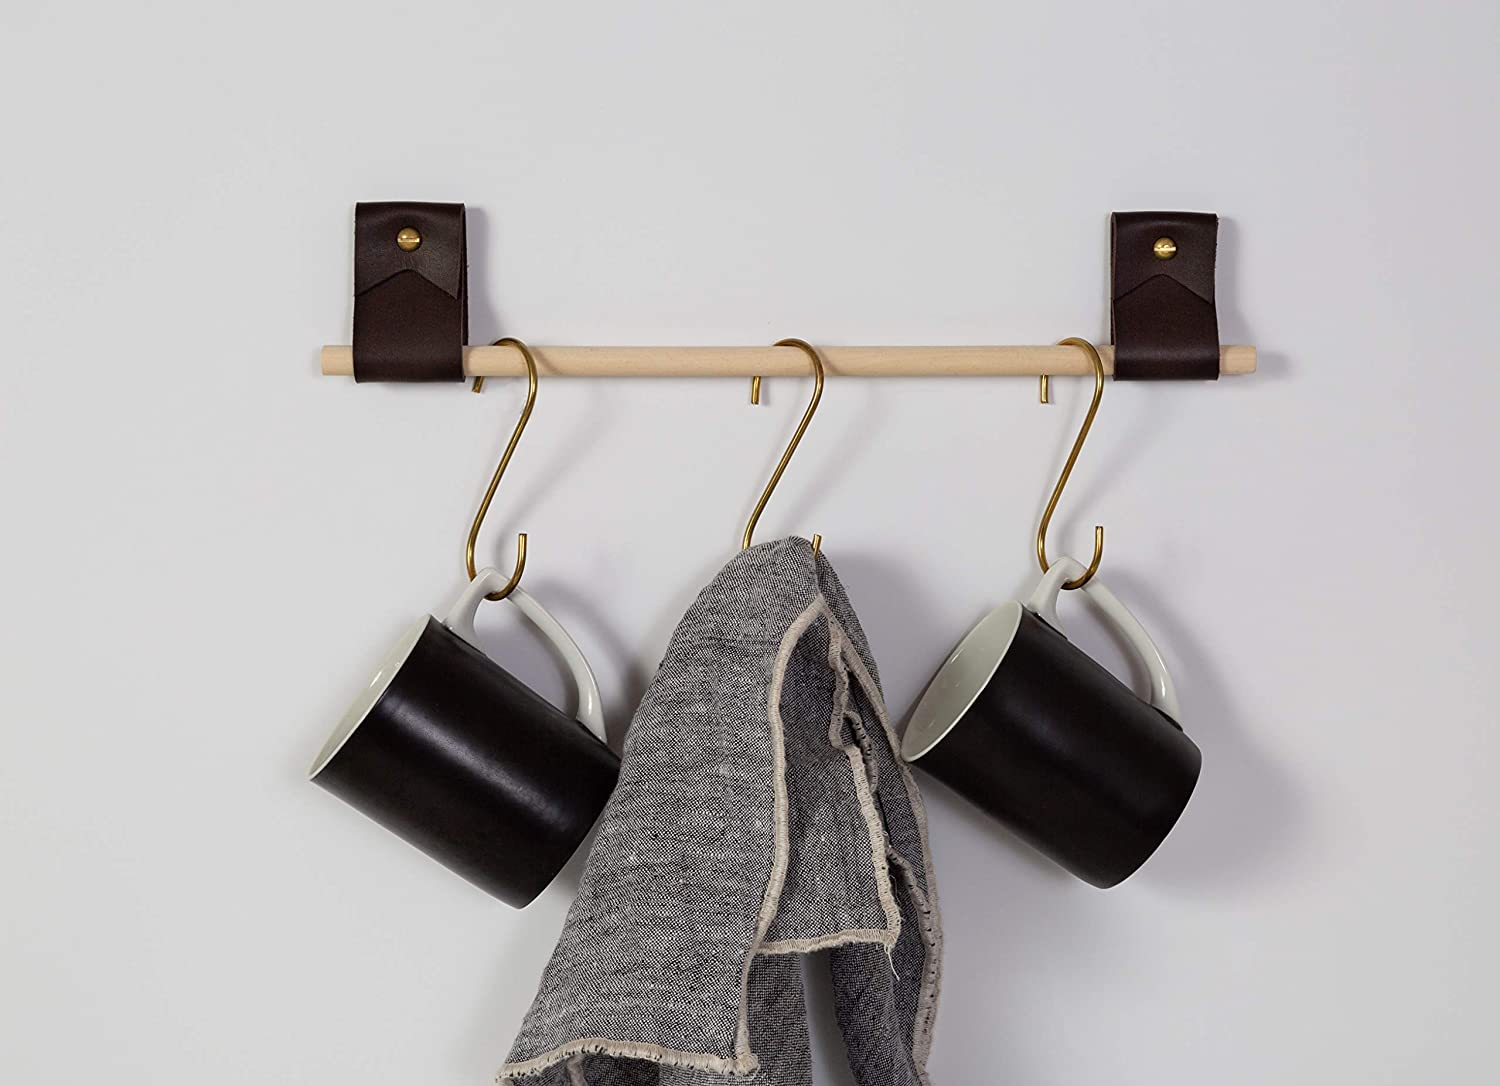 small minimalist leather strap hanger for bath towel holder leather wall  hook strap towel hook bathroom decor brass towel ring nordic home